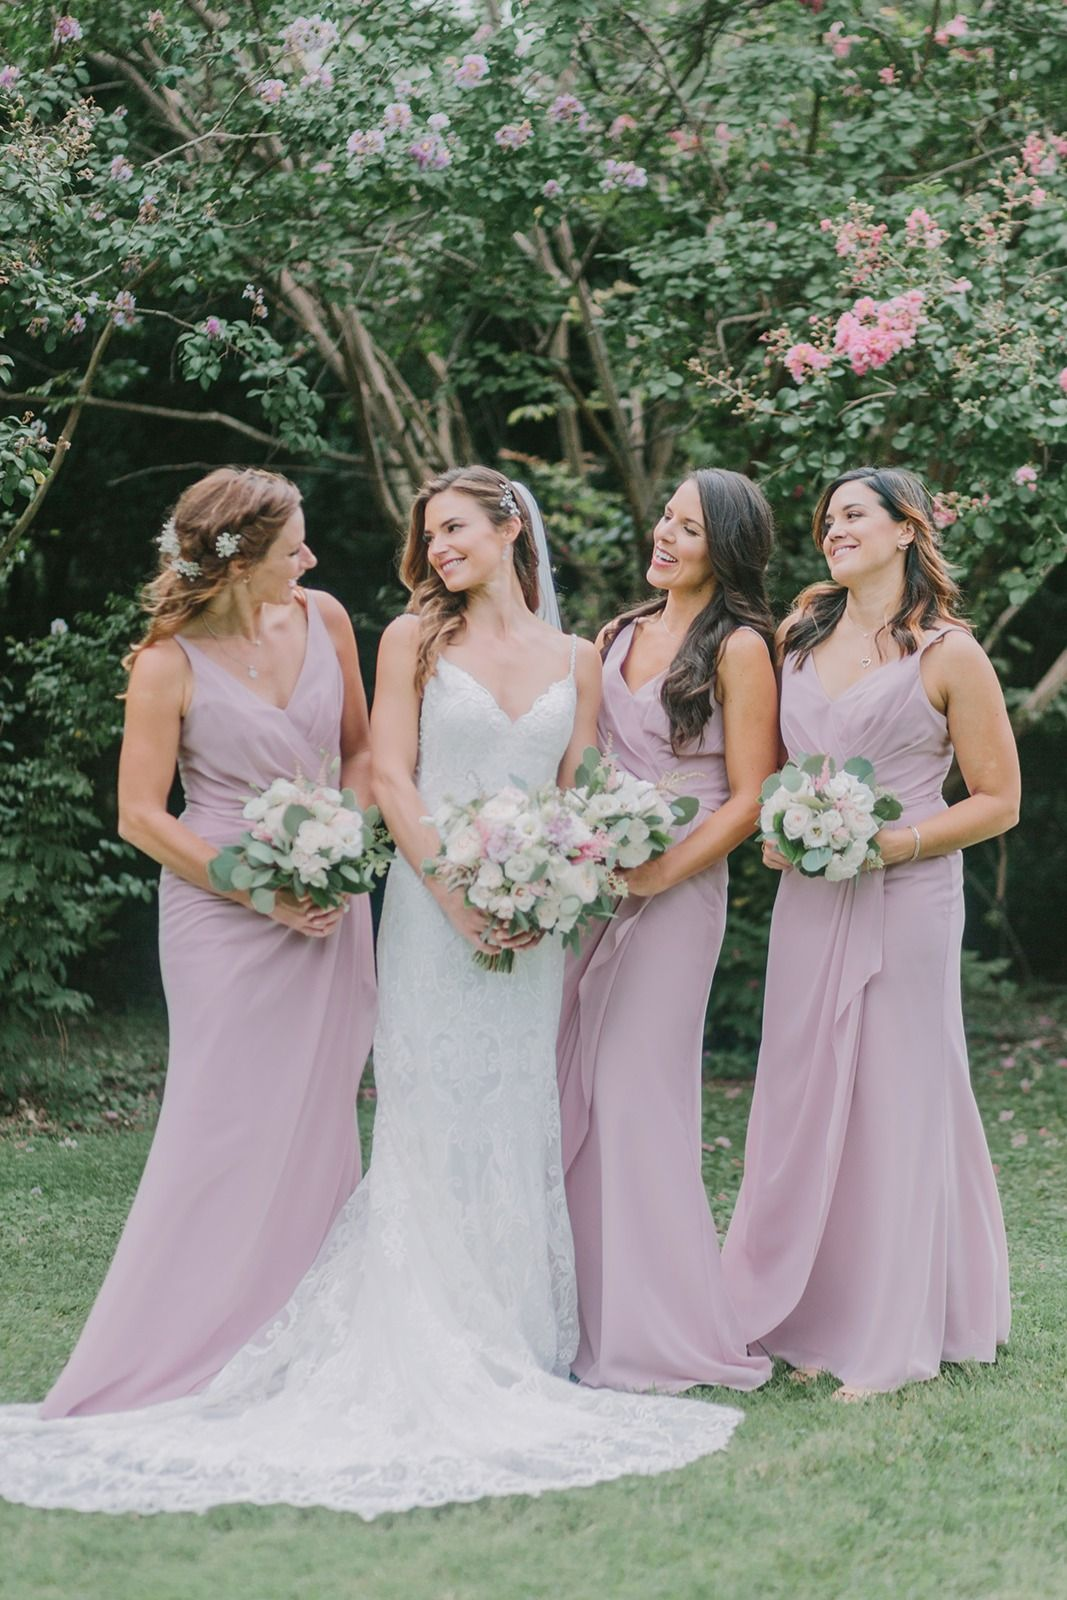 Looking For Blush And Light Pink Bridesmaid Dresses Brideside S